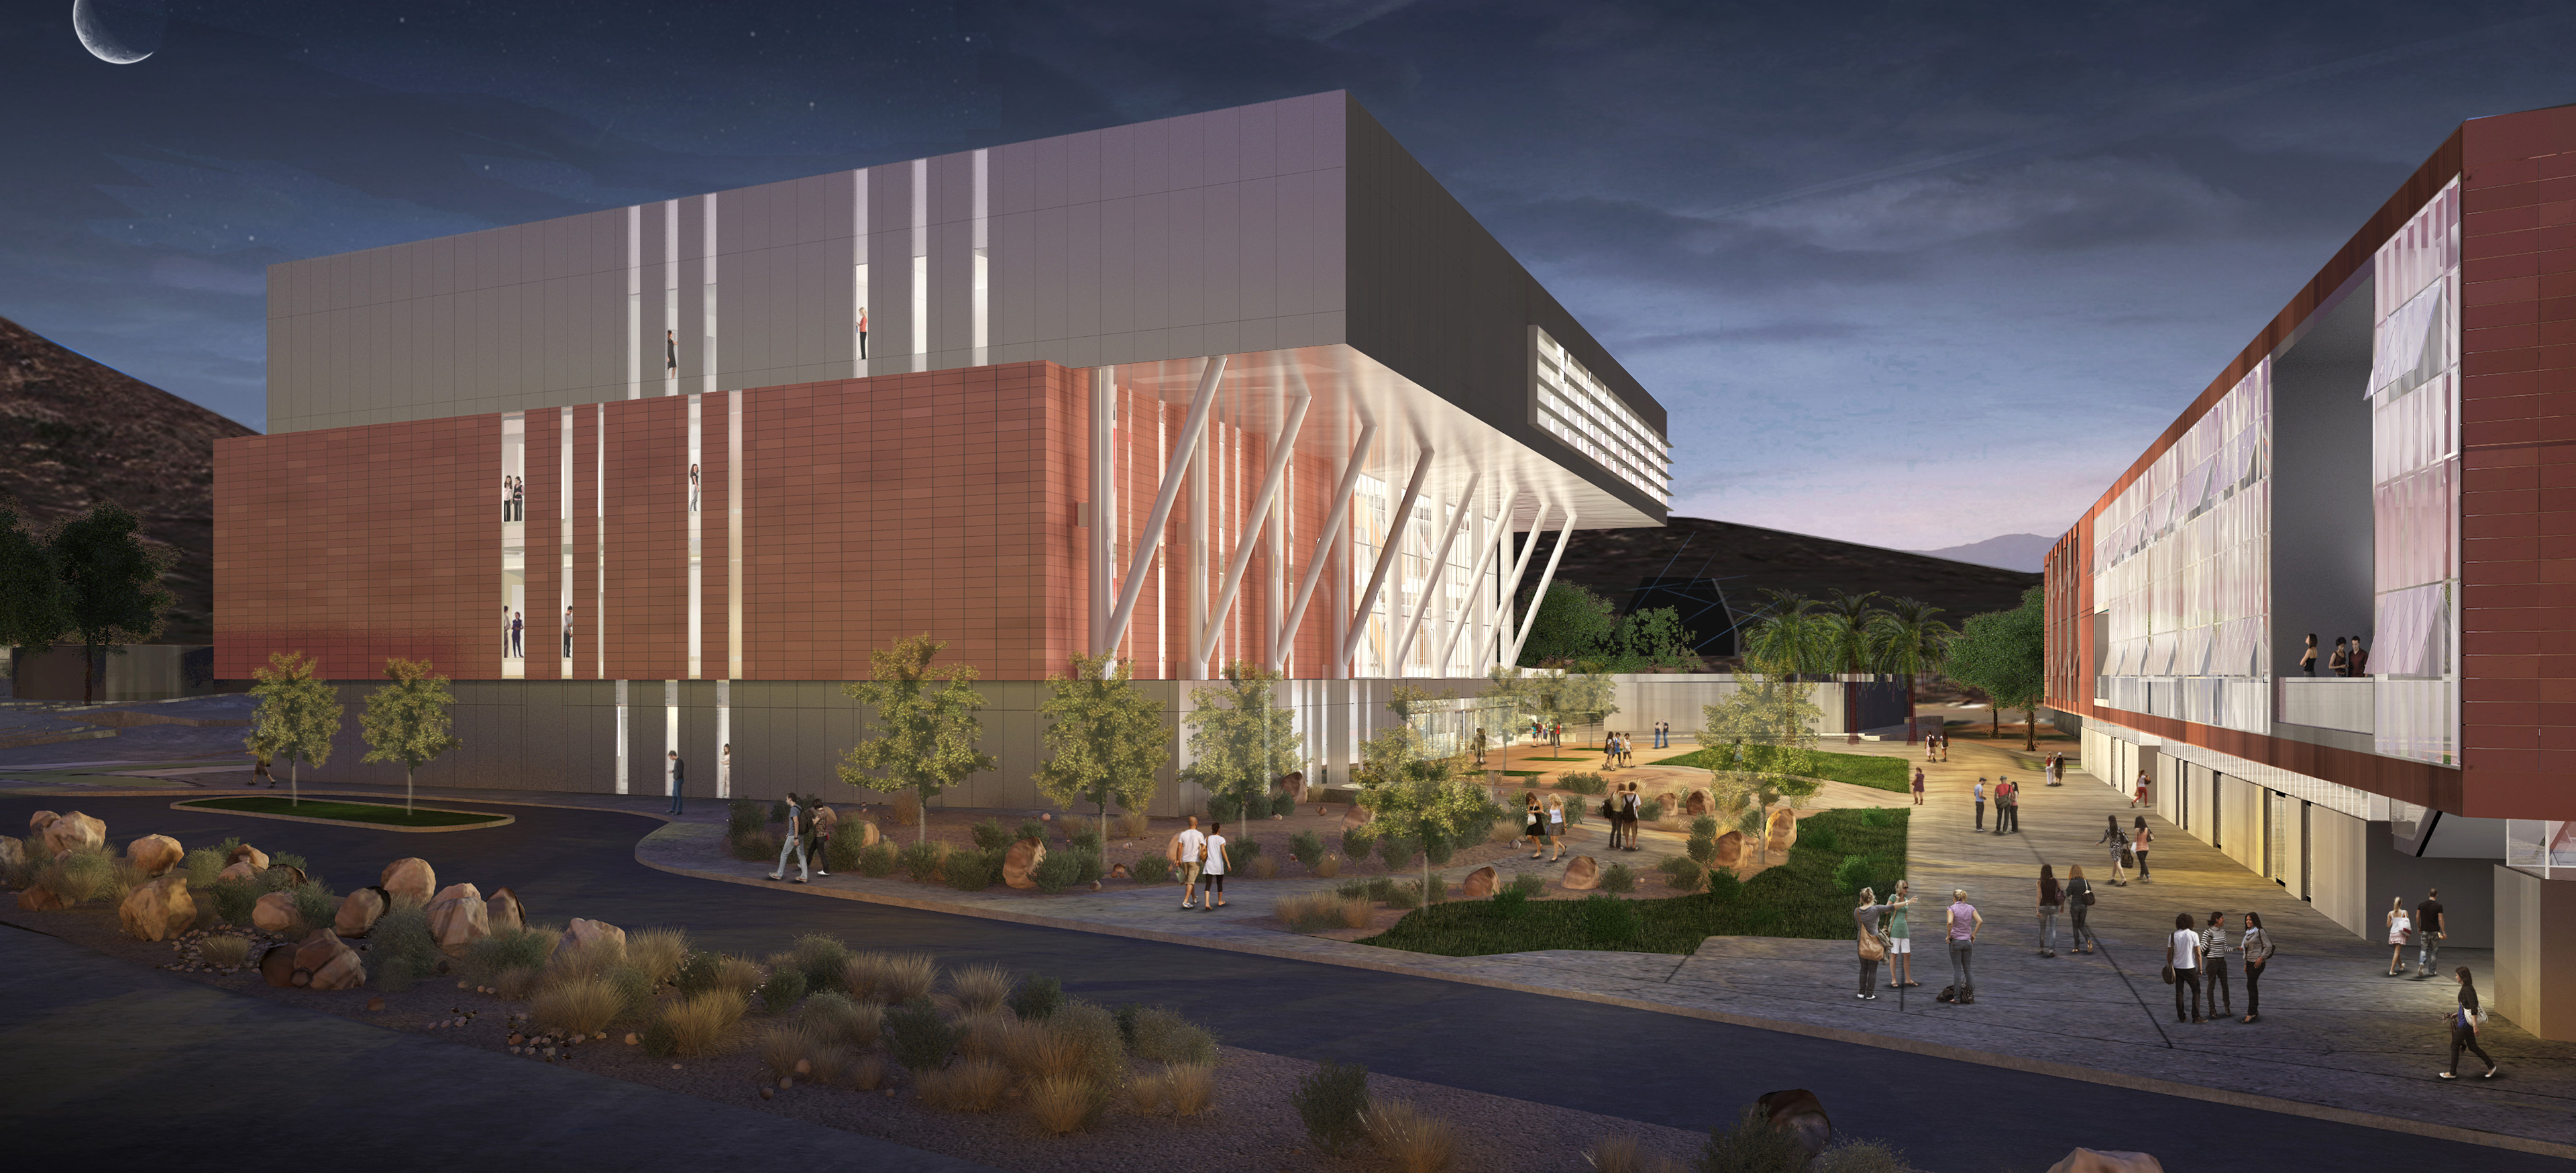 Spectacular New Library Opens at Palomar College